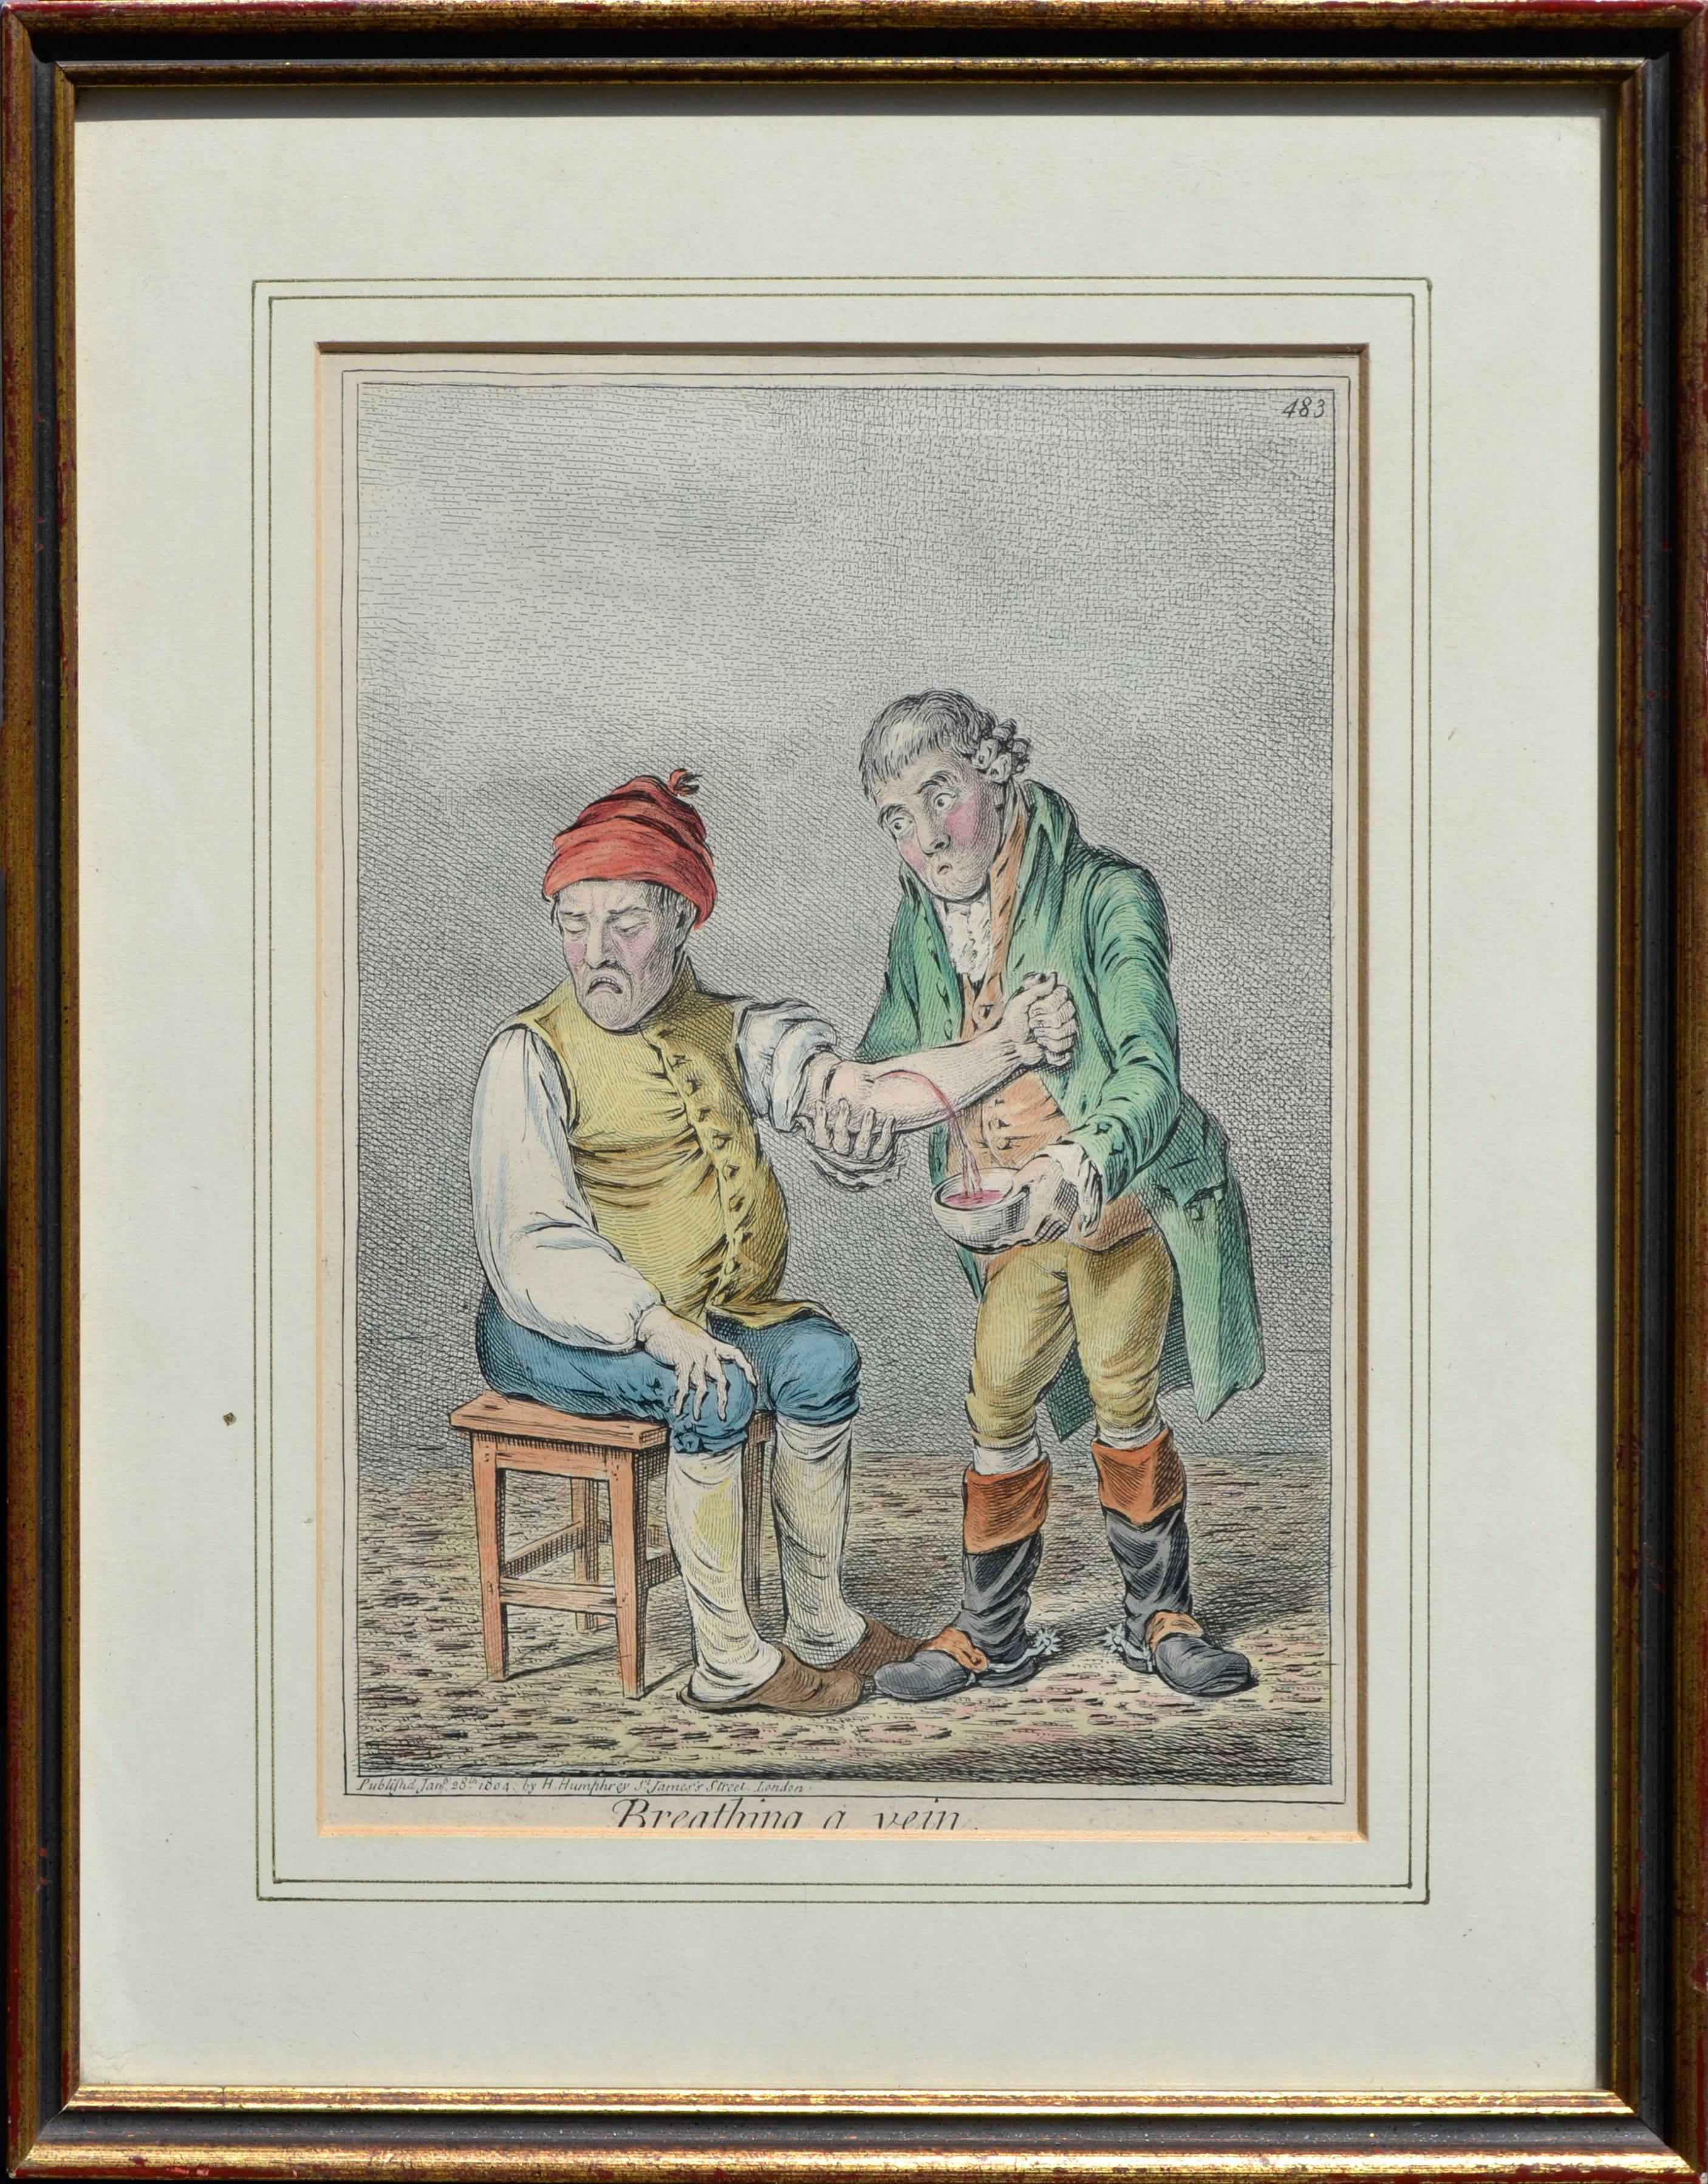 """""""Breathing A Vein"""" - Early 19th Century Figurative Caricature Illustration"""